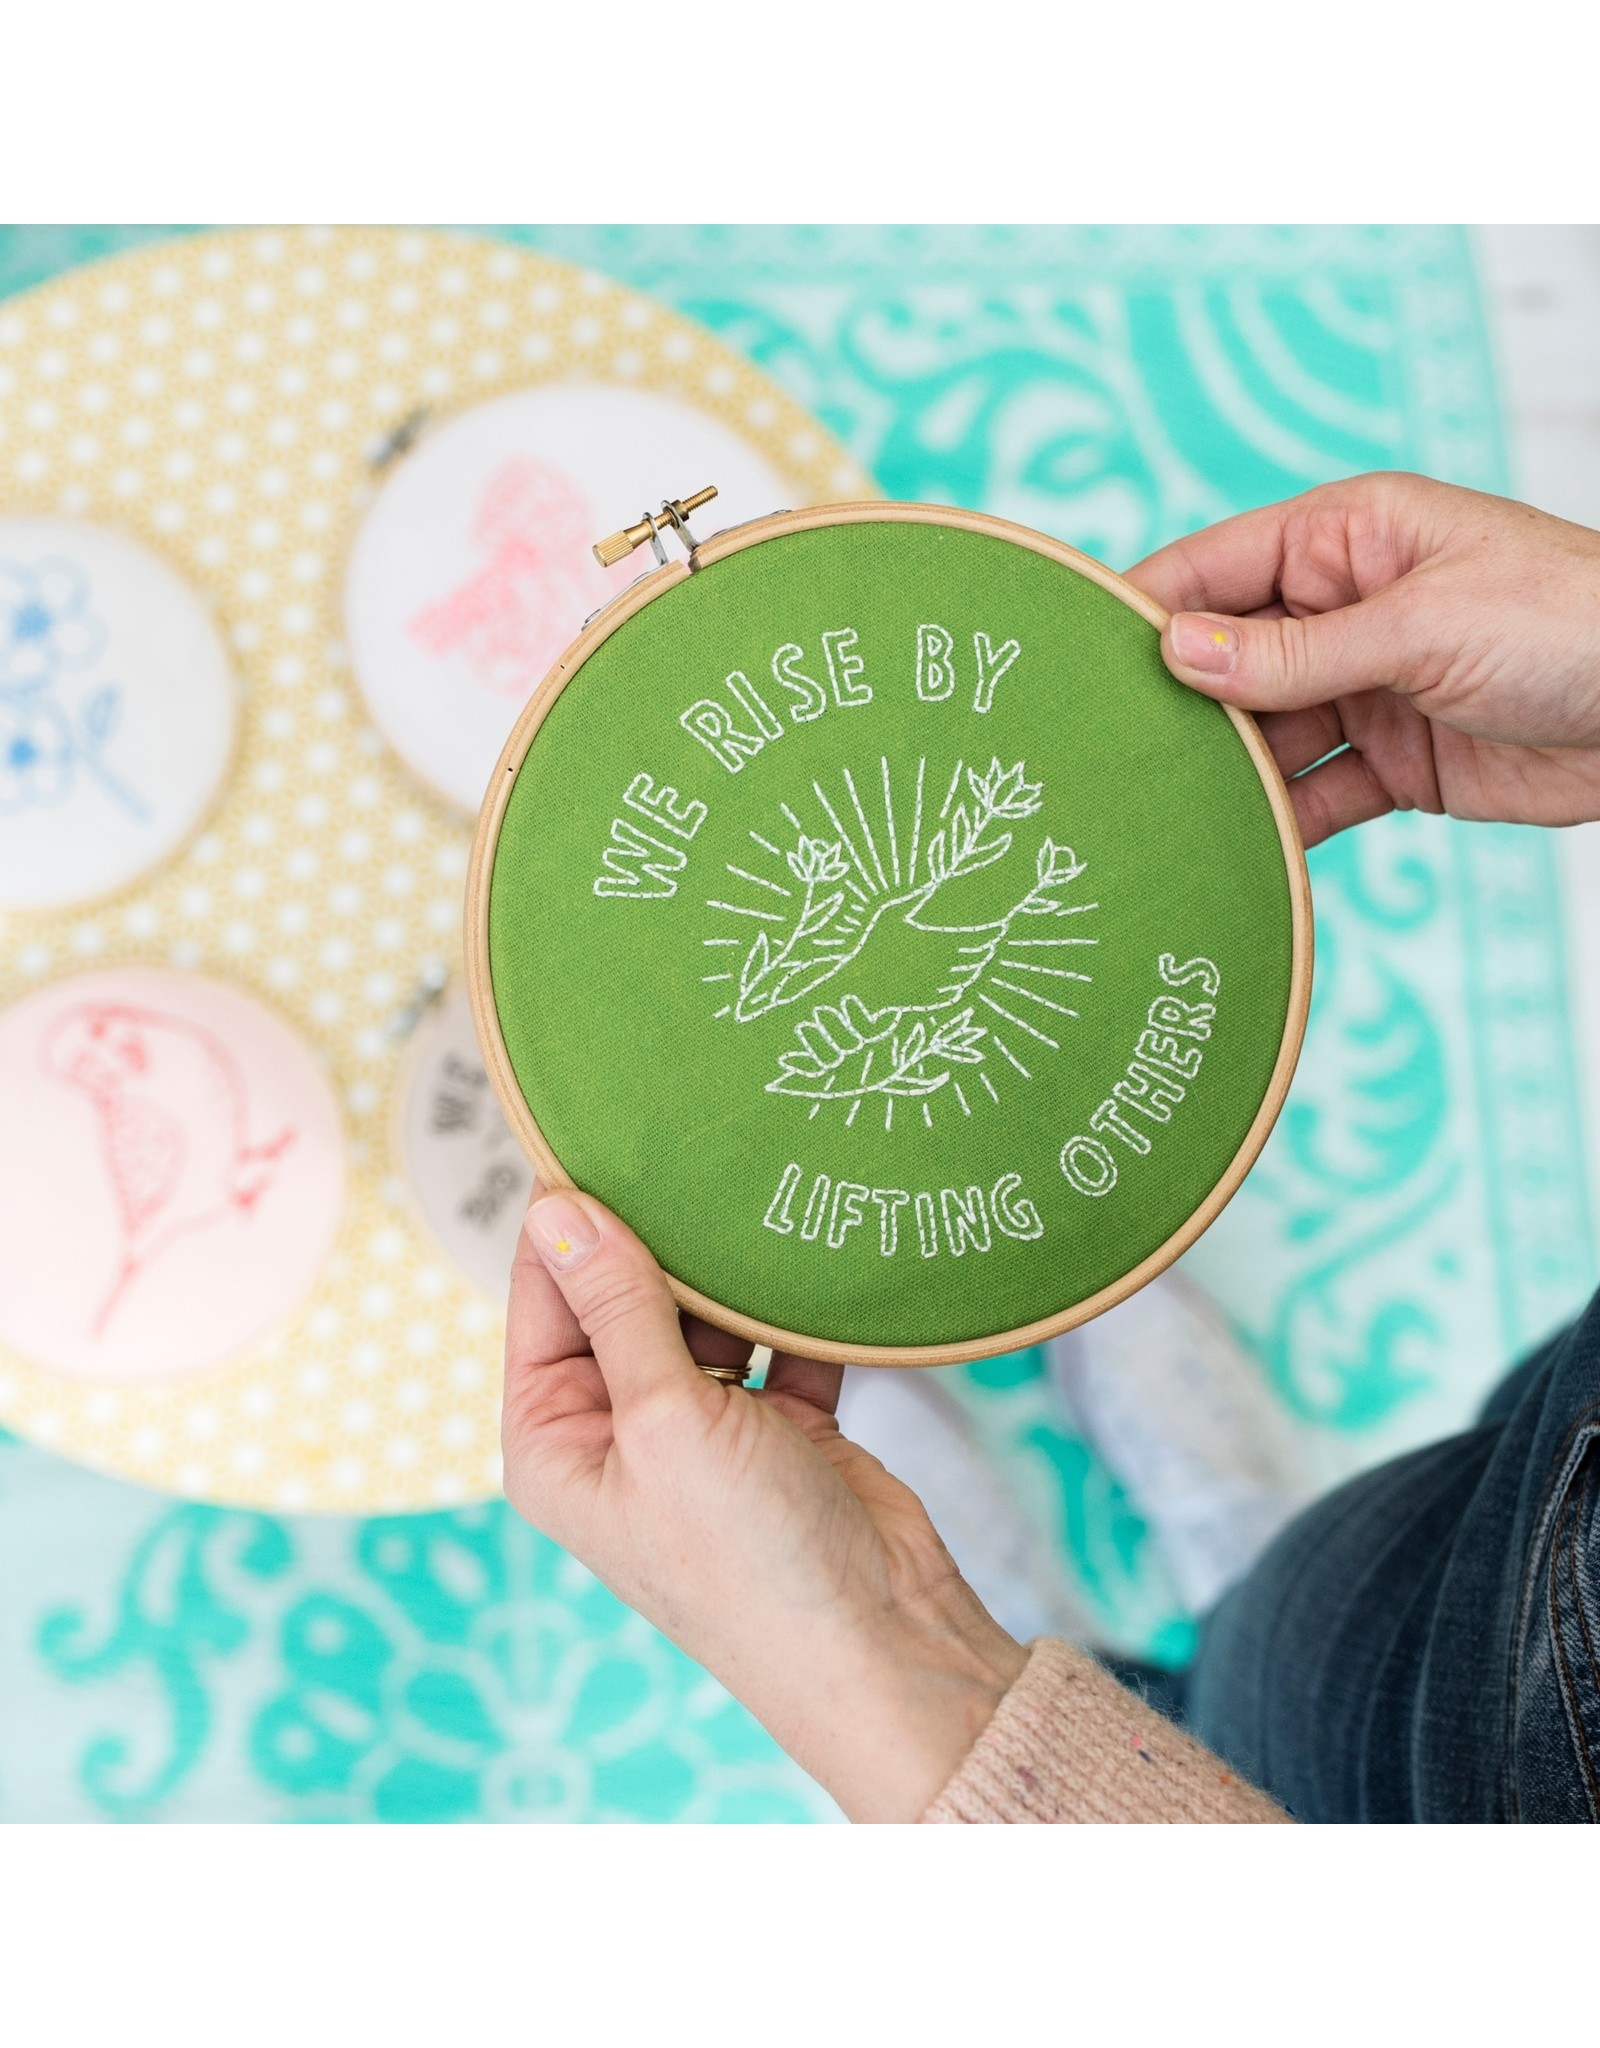 Cotton Clara We Rise by Lifting Others Embroidery Kit - Green